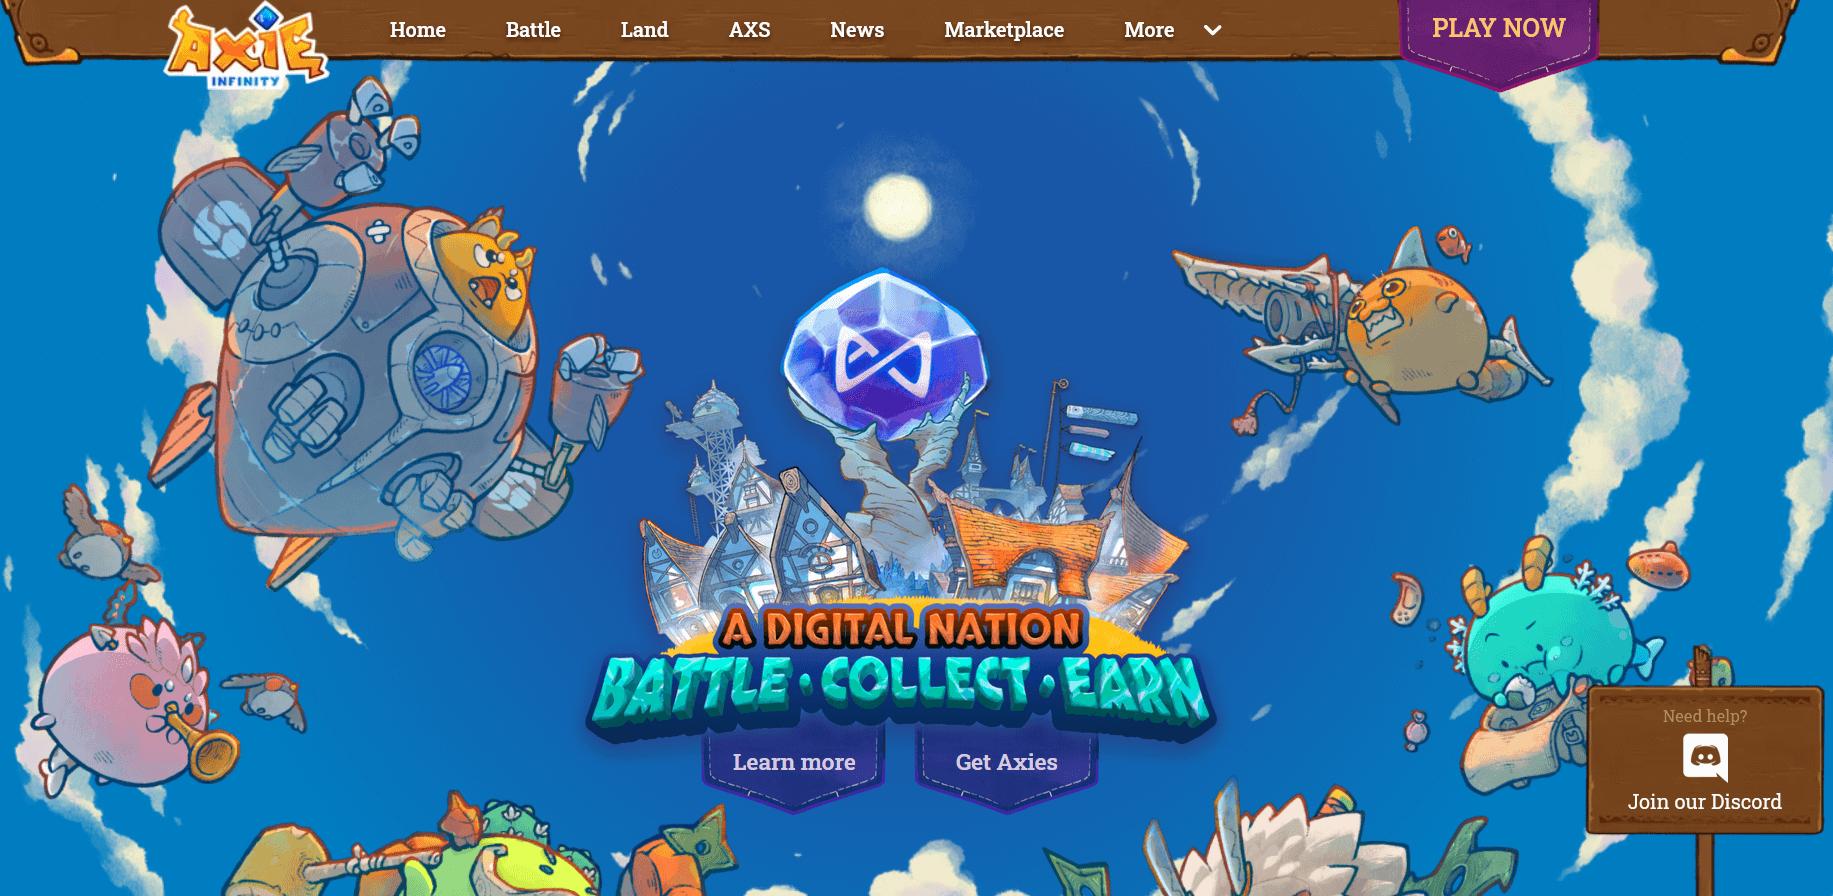 Axie Infinity Home Page